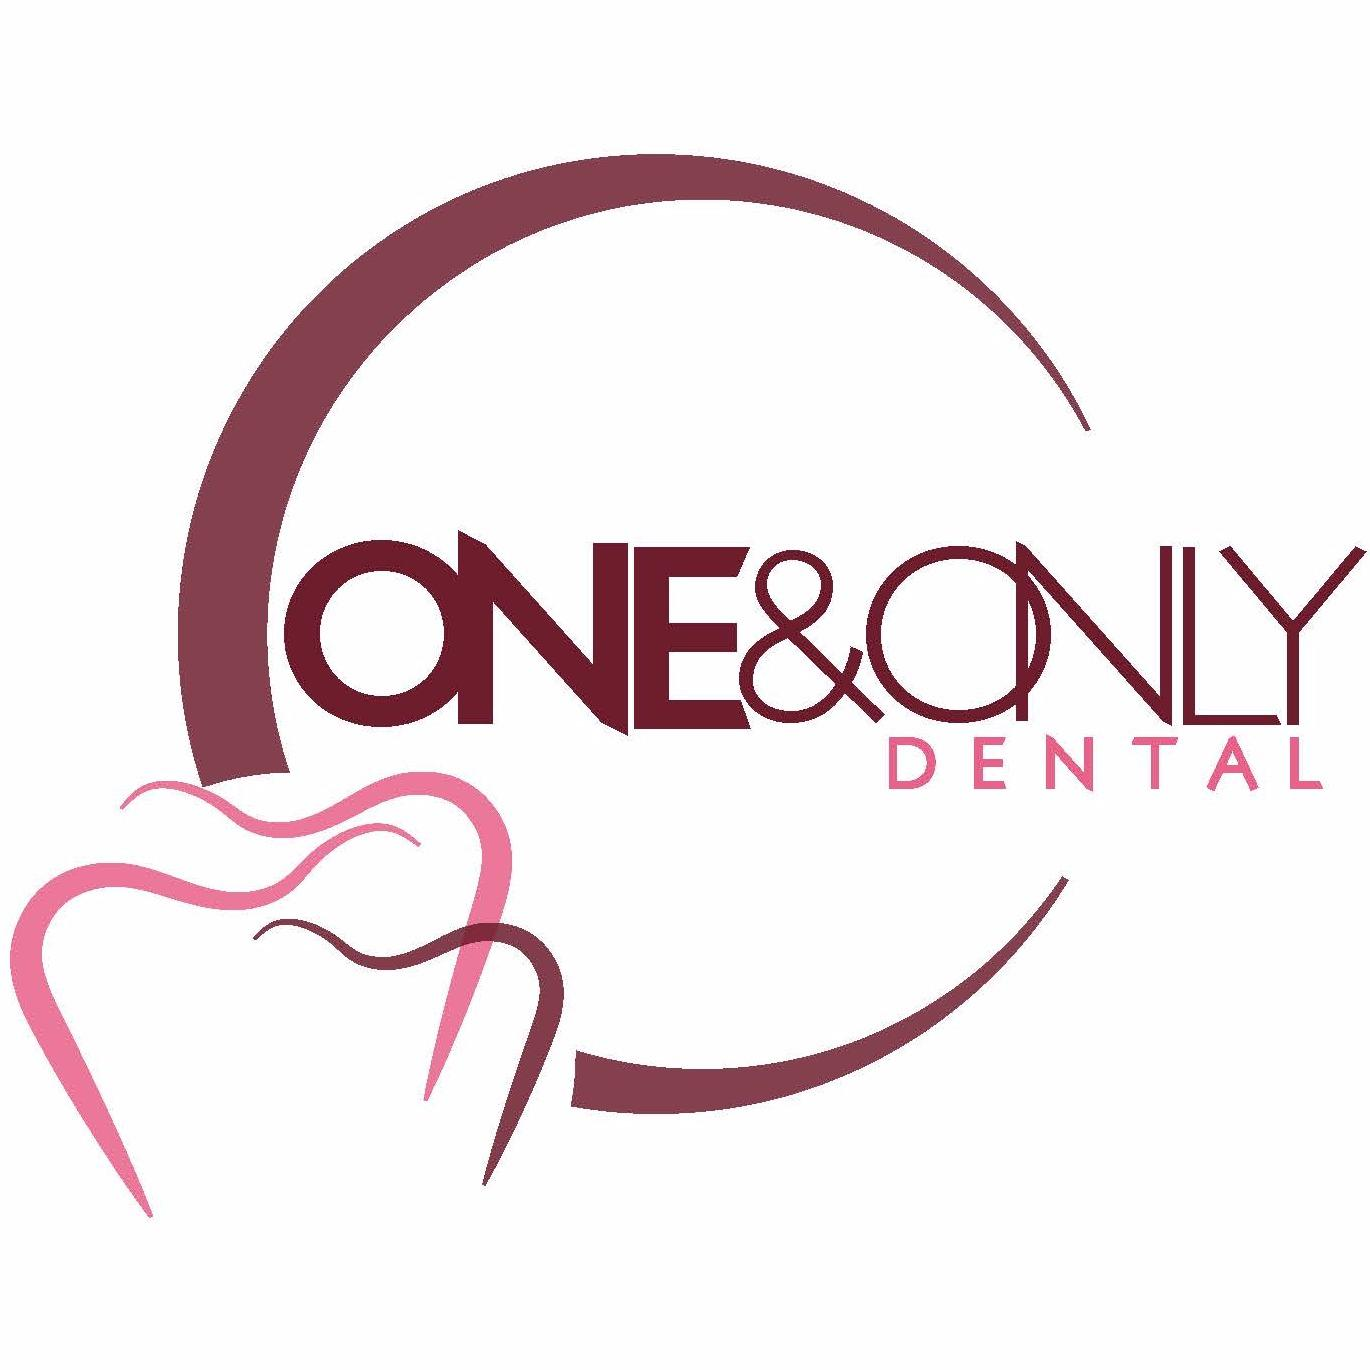 The One And Only Dental Care